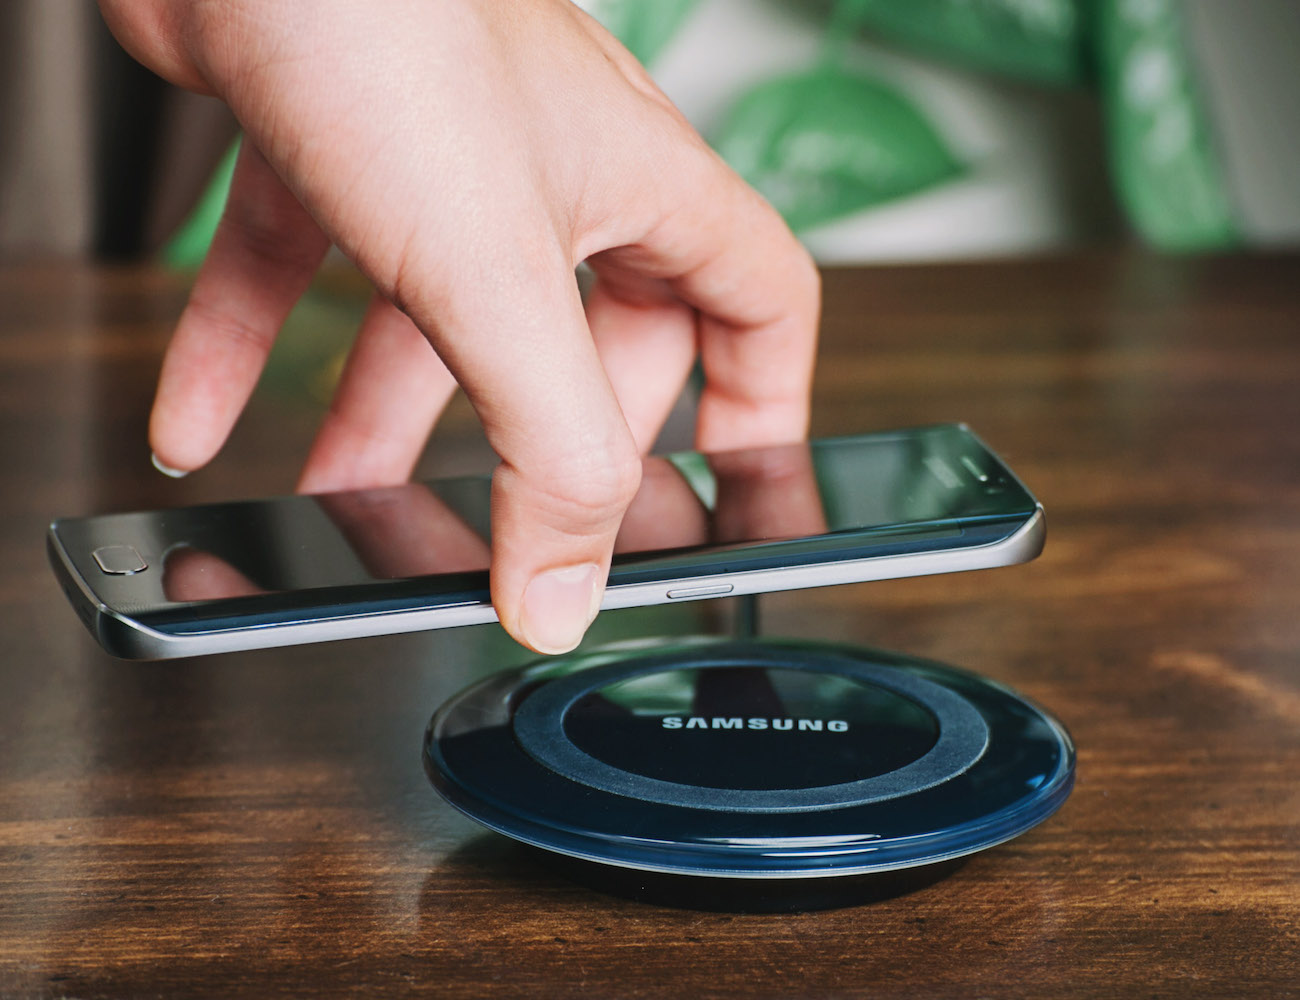 Samsung Wireless Charging Pad » Review